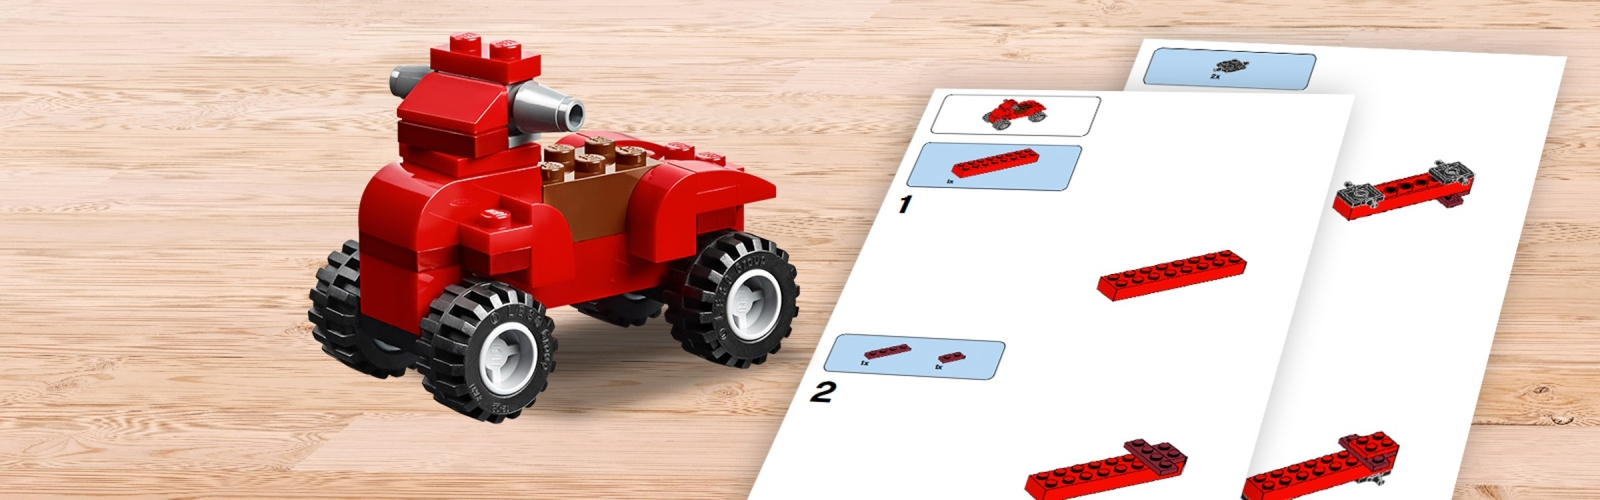 LEGO® Classic toys - Free building instructions   Official